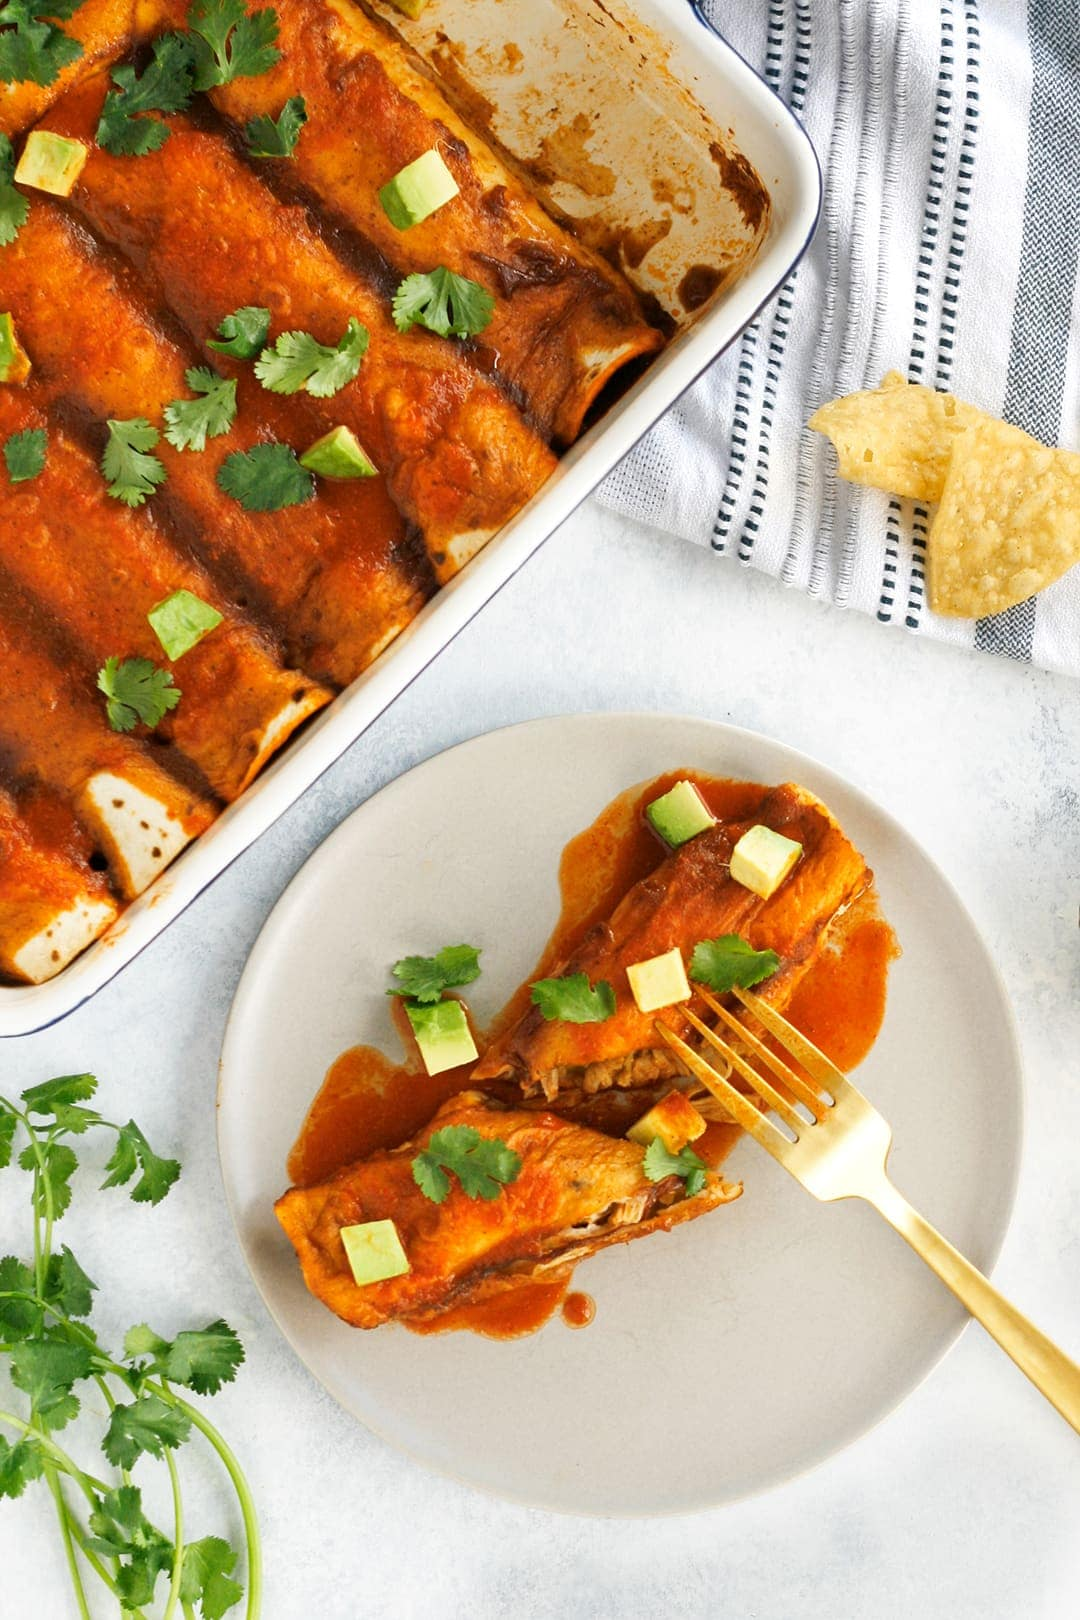 Vegan Enchiladas with Jackfruit and Black Beans - Well Vegan